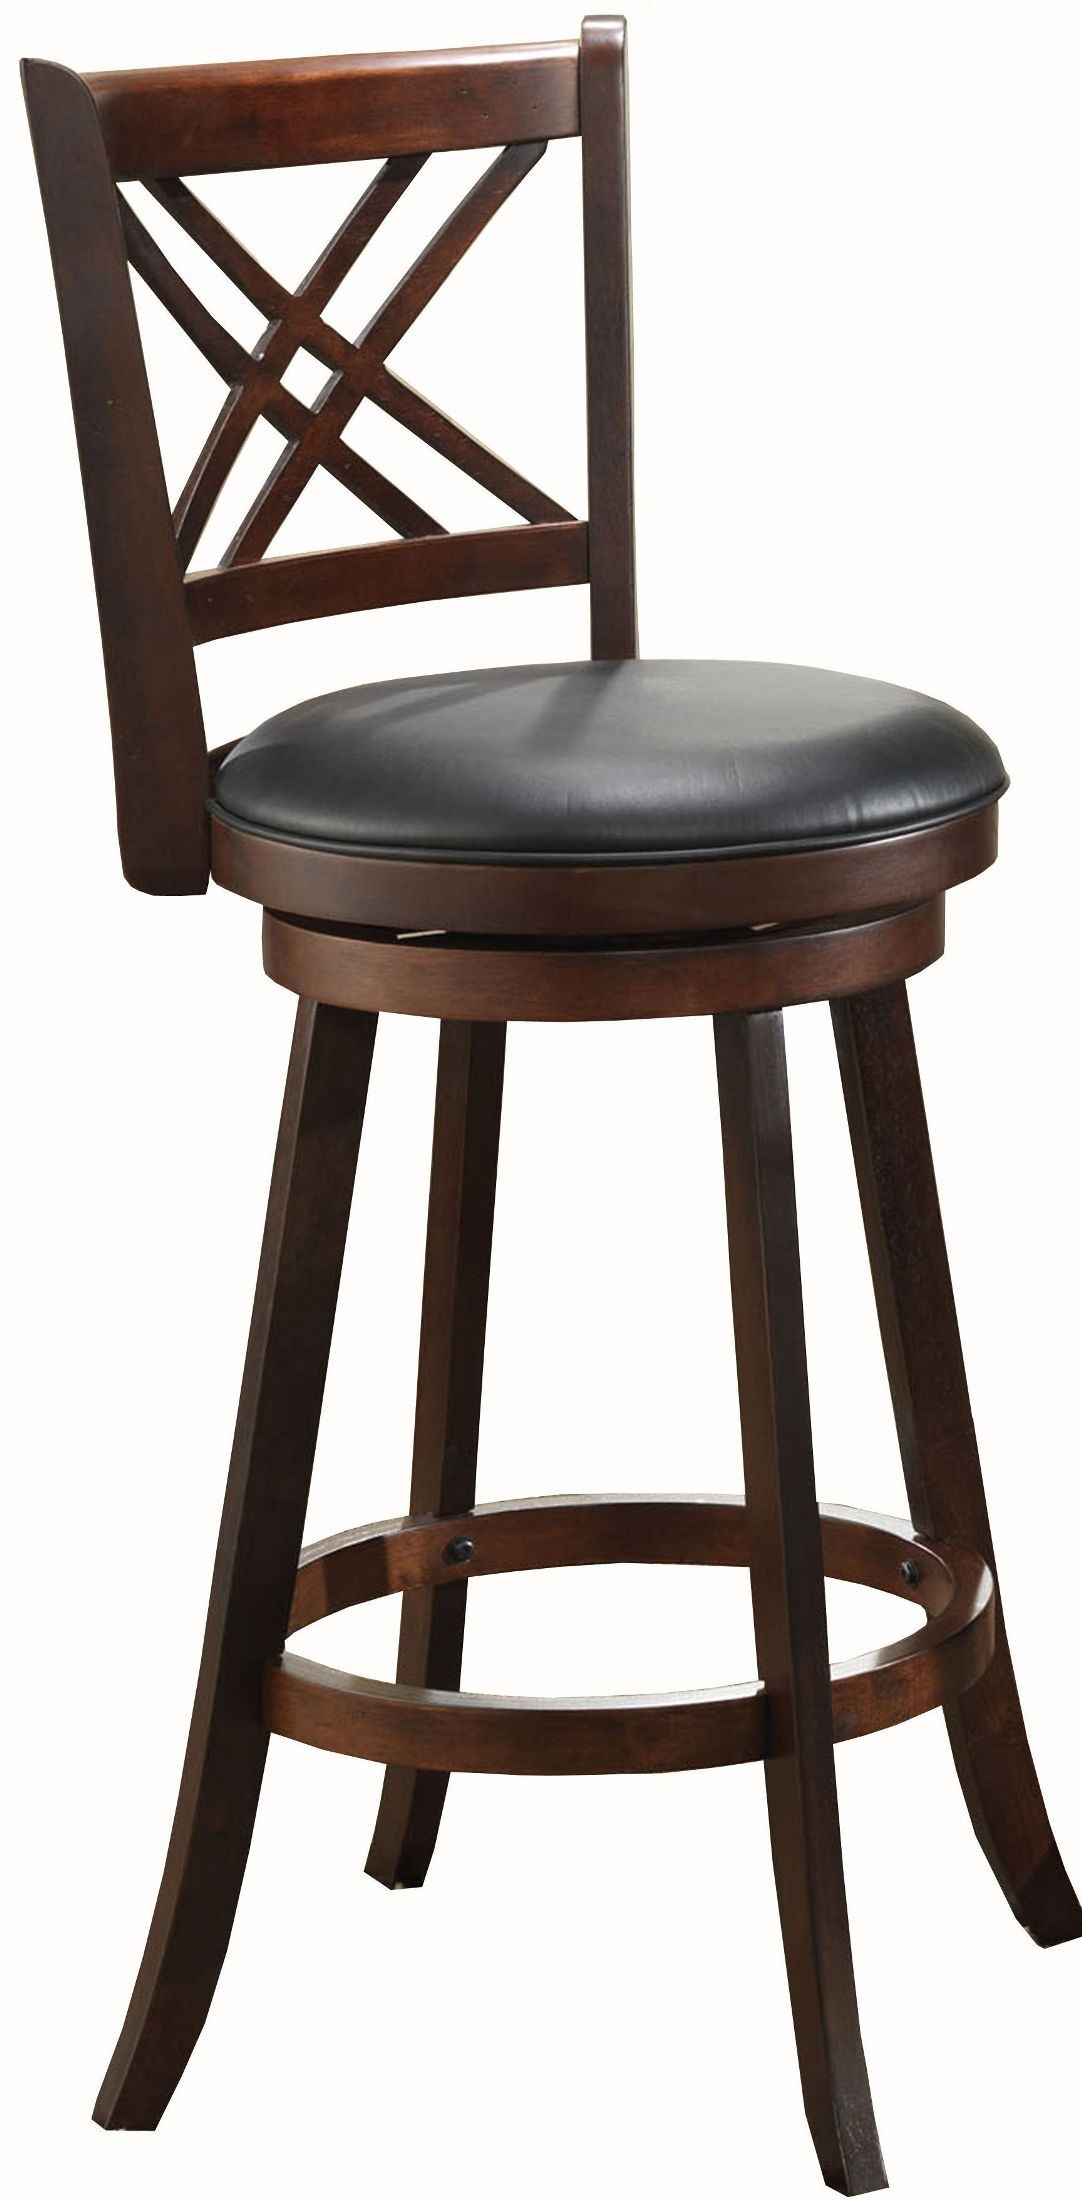 29quot Walnut Double X Back Stool Set of 2 N1300 35 BS 29  : n1300 35 bs 24bs 29eci from colemanfurniture.com size 1082 x 2200 jpeg 192kB